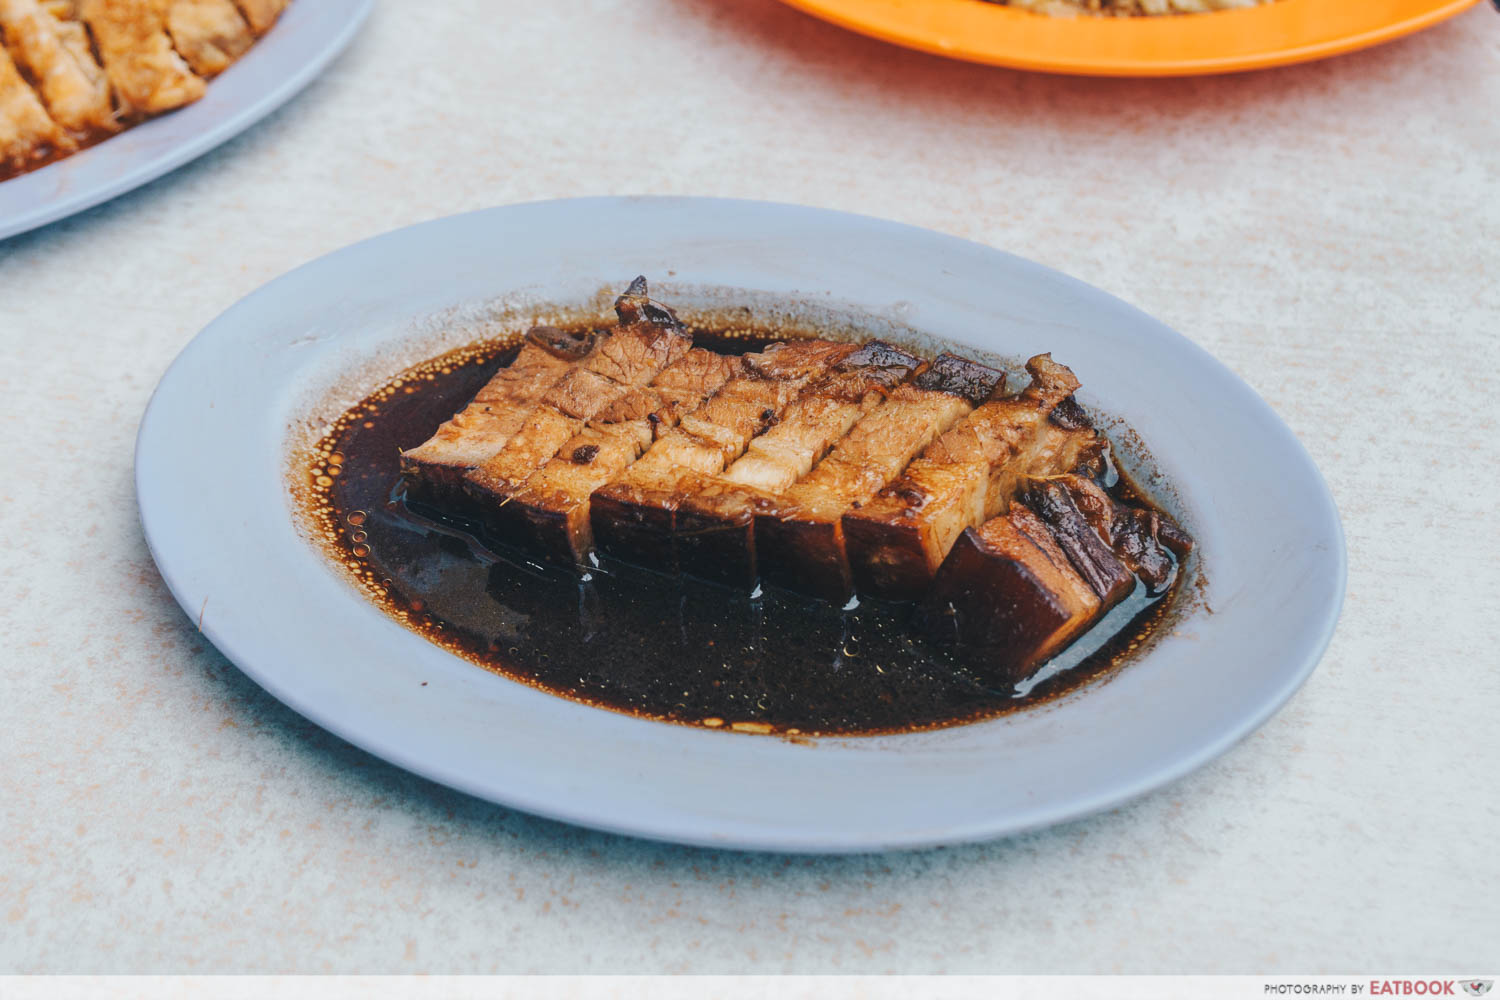 Loo's Hainanese Curry Rice - Pork belly intro shot